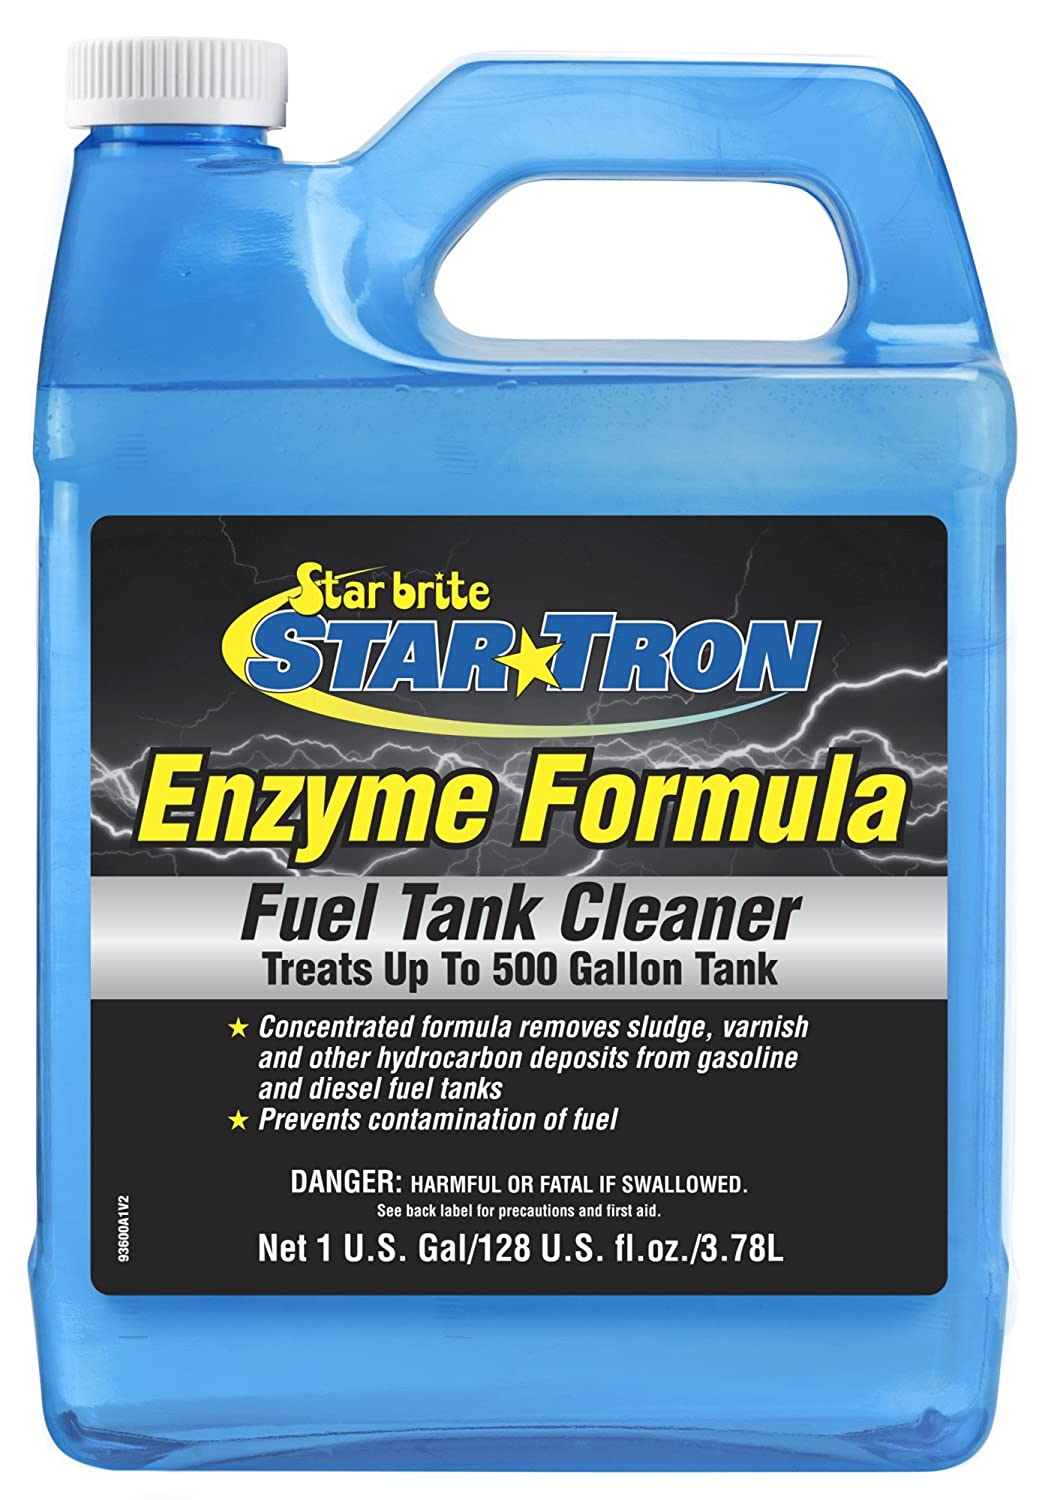 Star Tron Gas Tank & Fuel System Cleaner - Remove Sludge & Deposits From Gasoline & Diesel Fuel Tanks + Clean Injectors & Fuel Lines Star brite 093600N